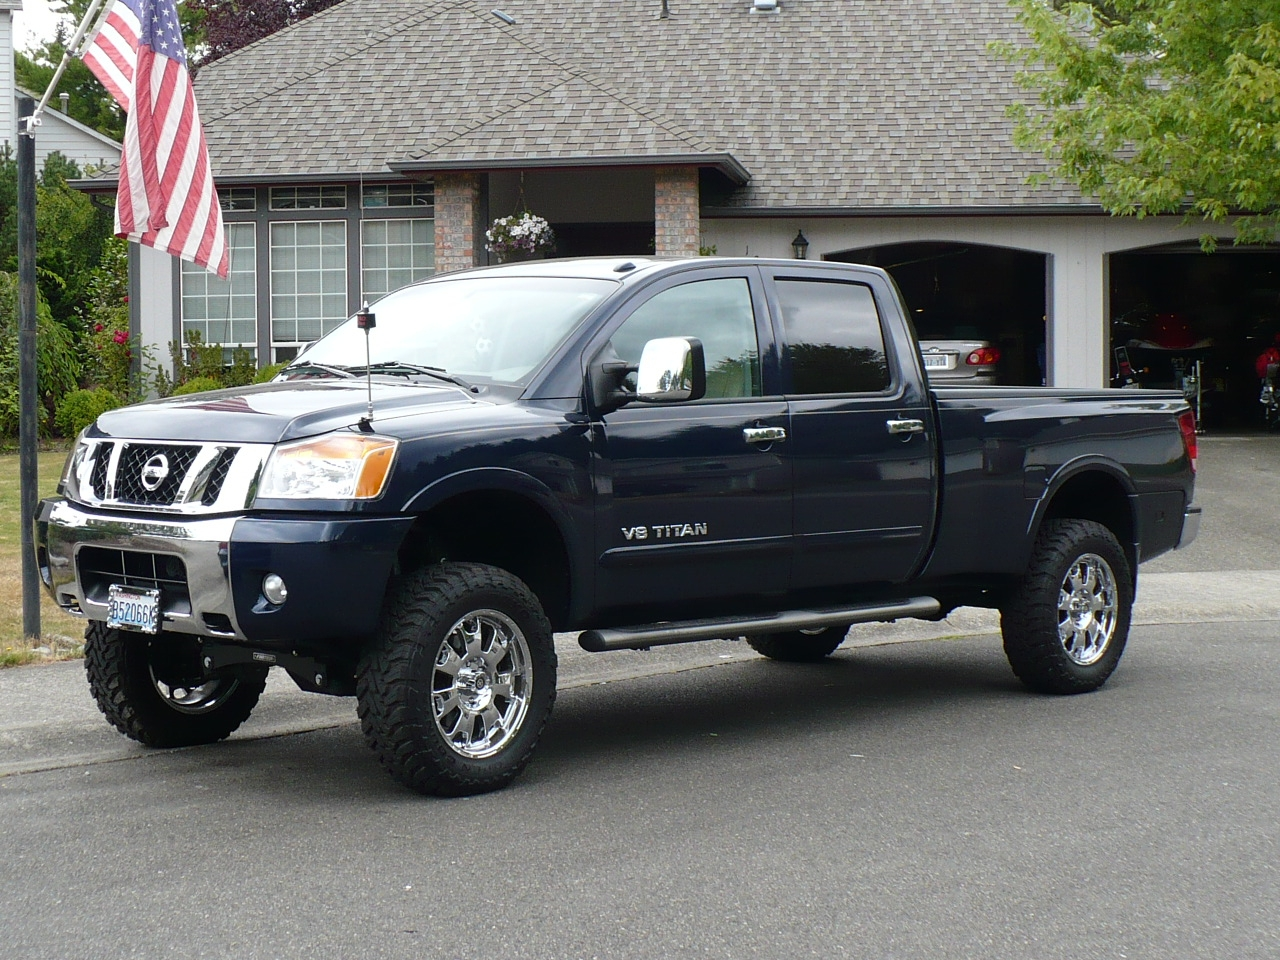 camurano2 2008 nissan titan crew cab specs photos modification info at cardomain. Black Bedroom Furniture Sets. Home Design Ideas